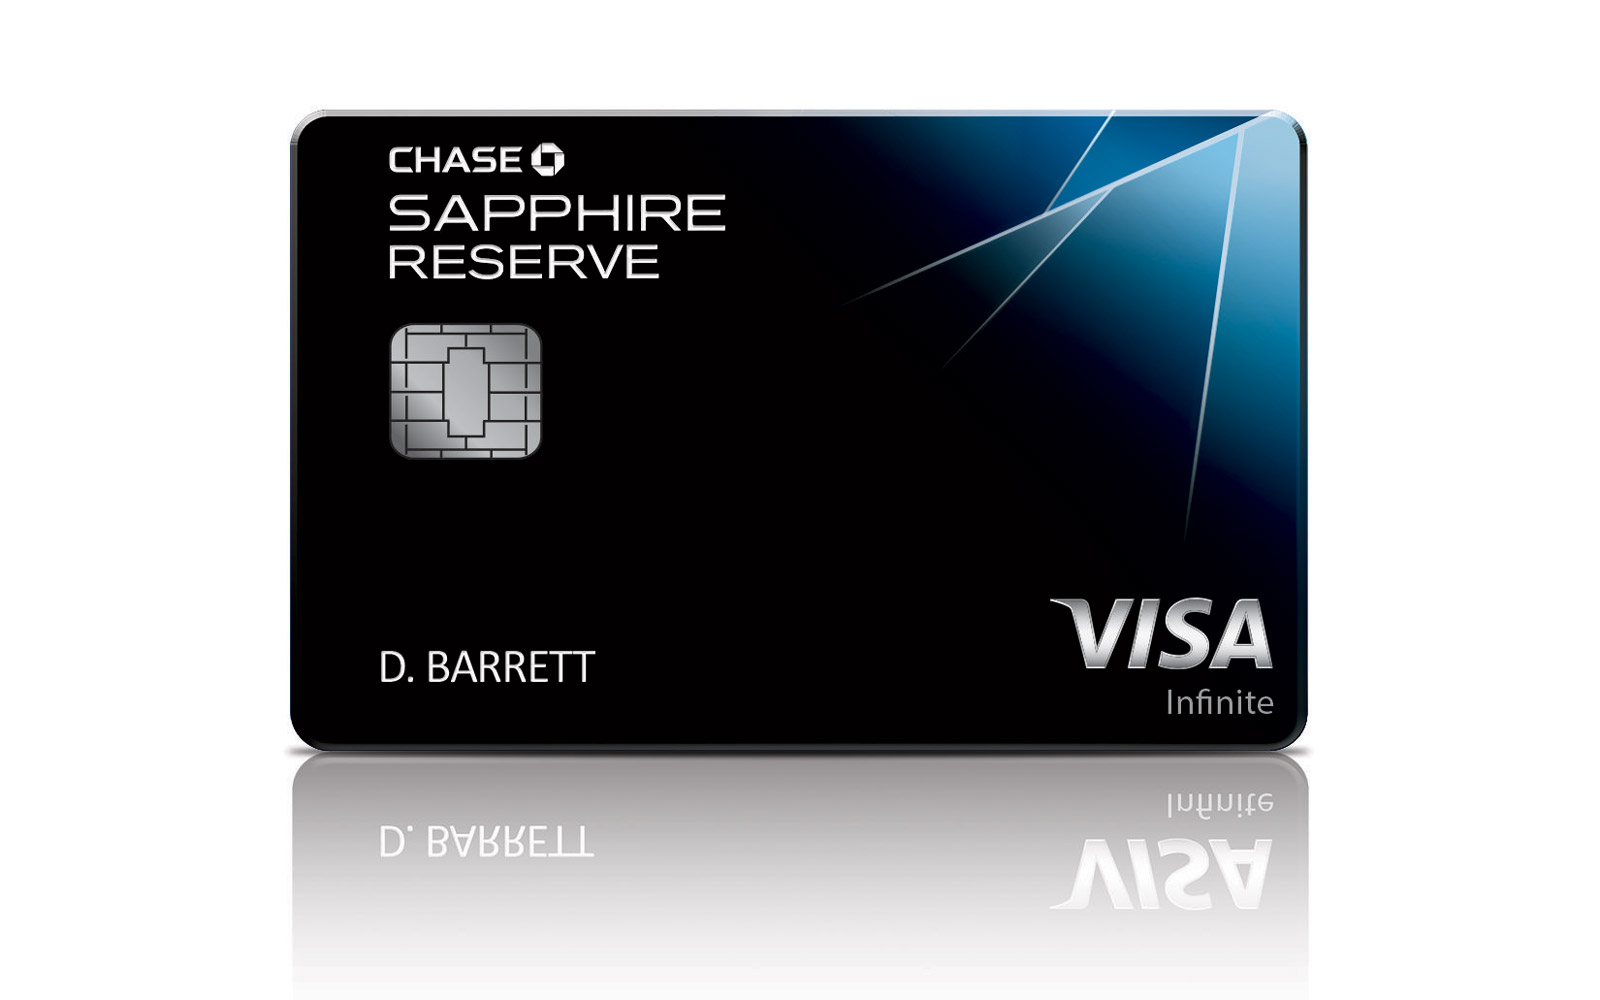 New Chase Sapphire Reserve Card Has Some Pretty Great Travel Perks